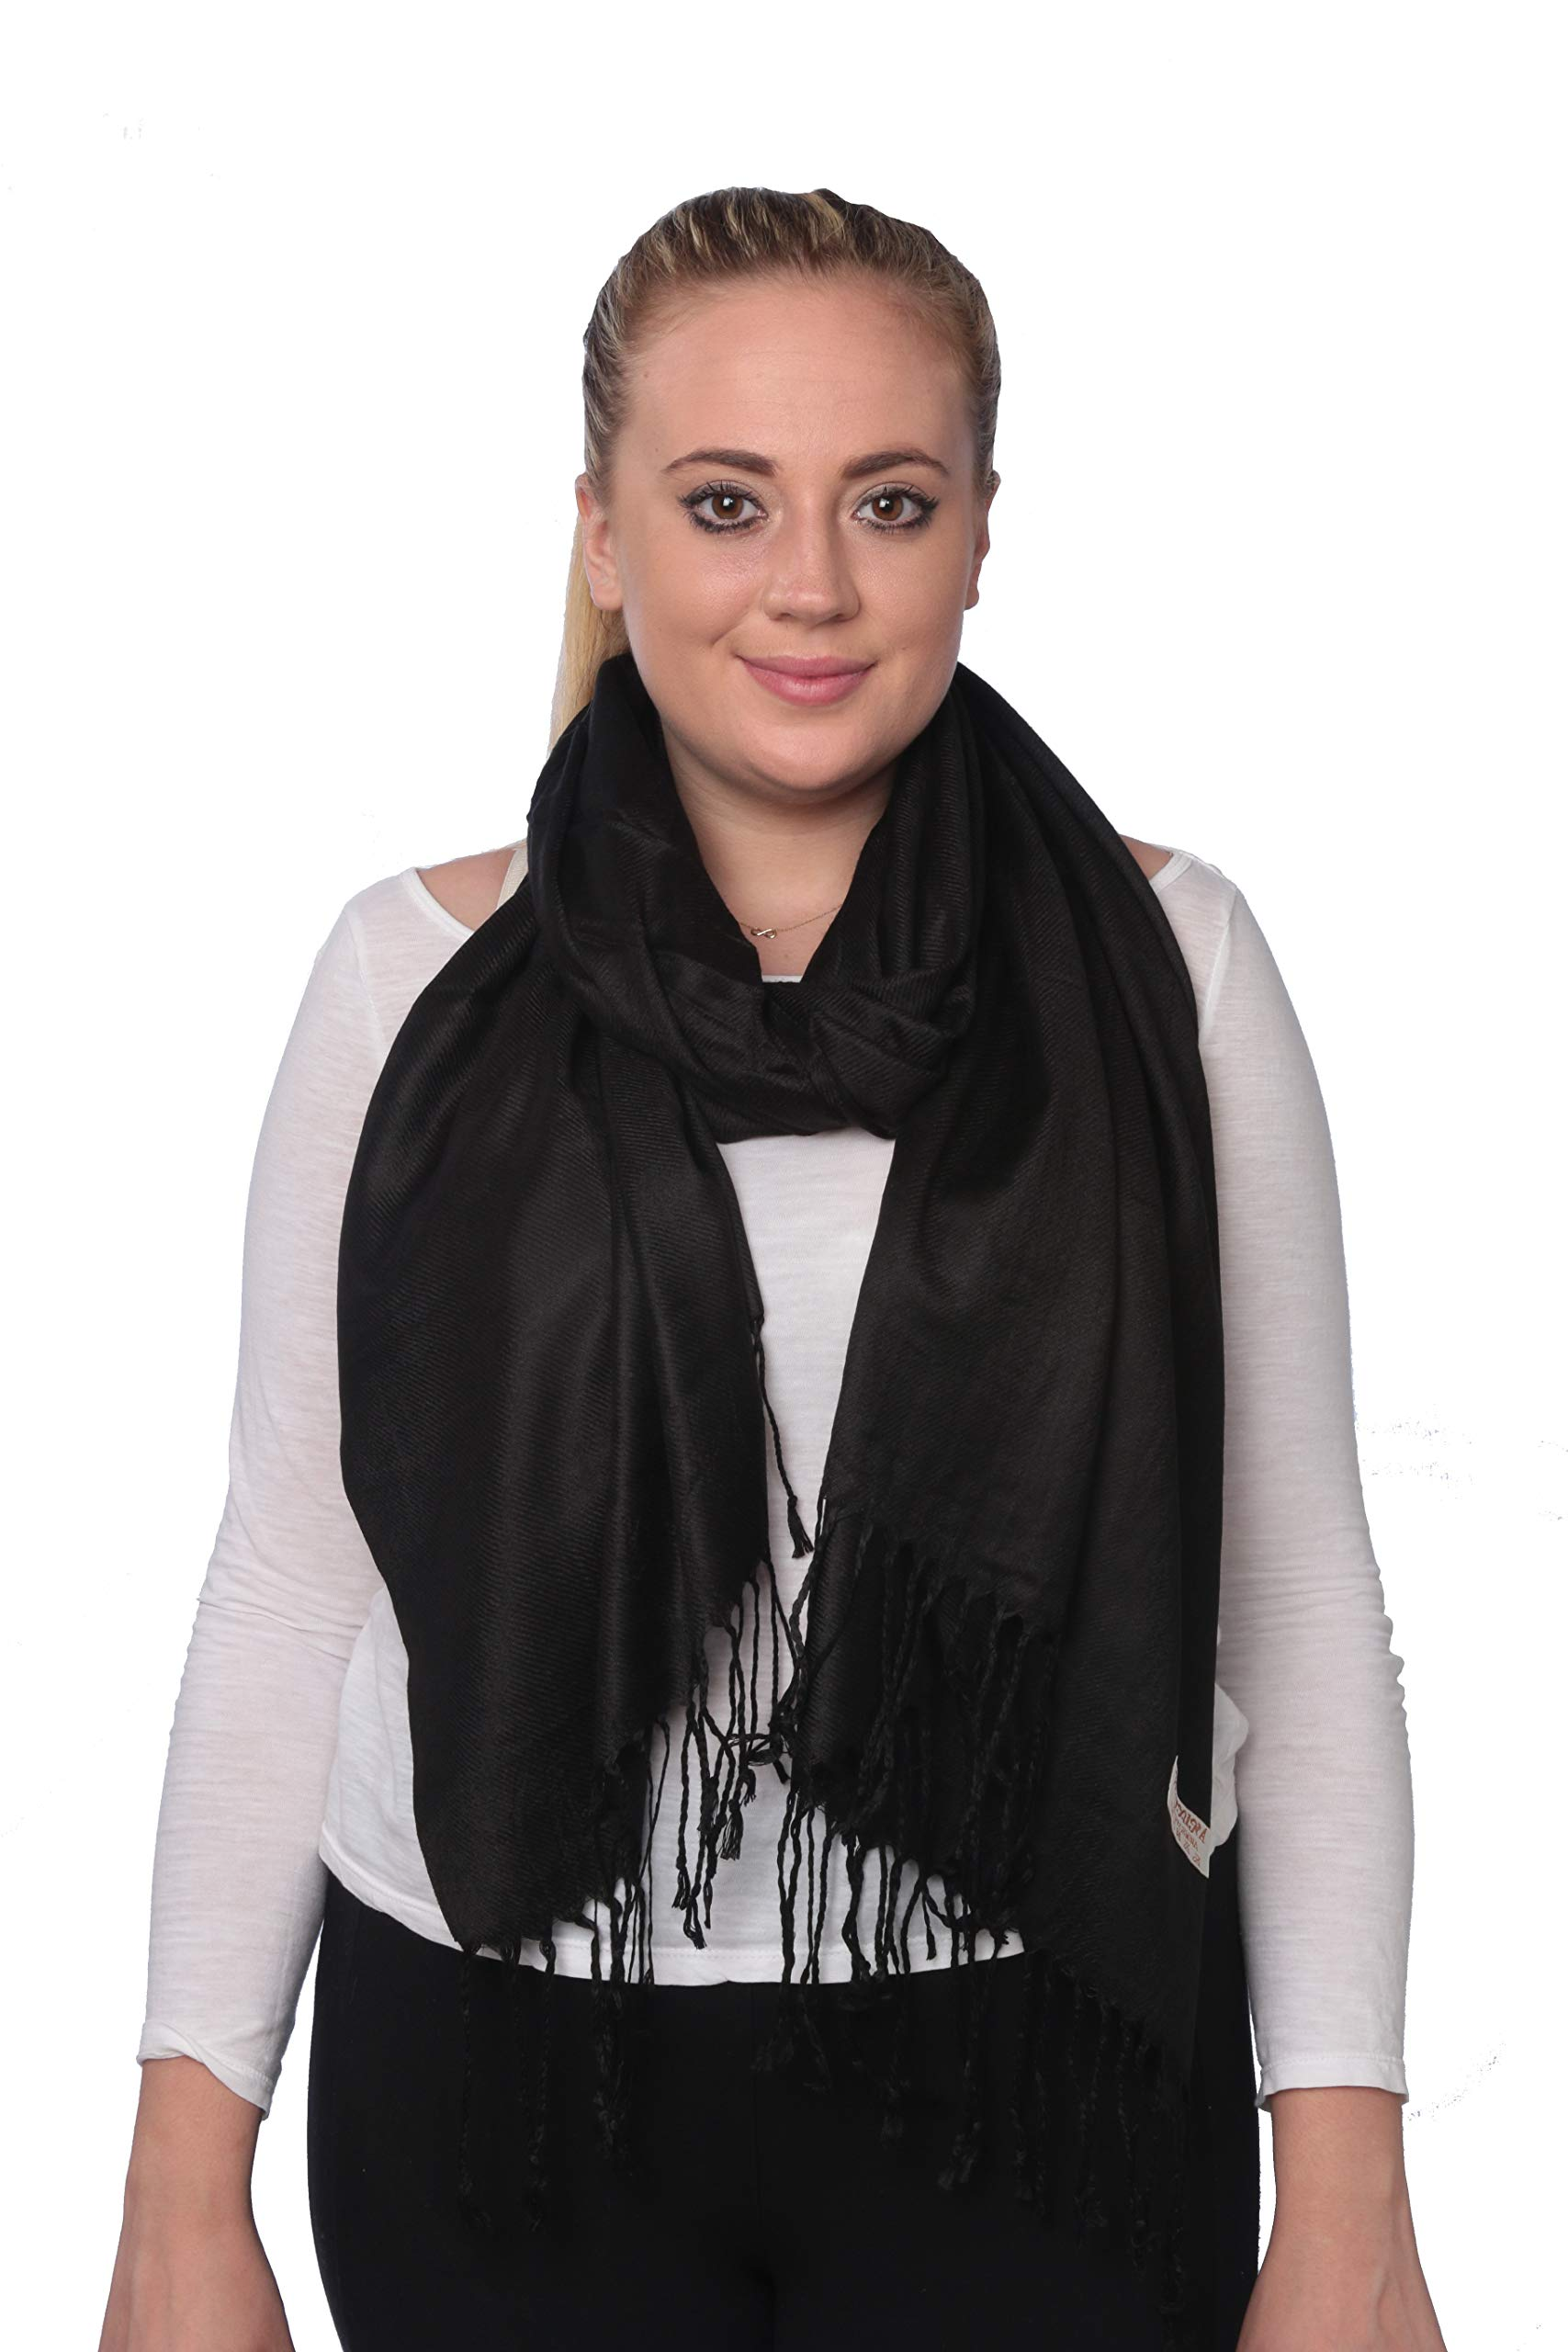 Pashmina Shawls and Wraps - Large Scarfs for Women - Party Bridal Long Fashion Shawl Wrap with Fringe